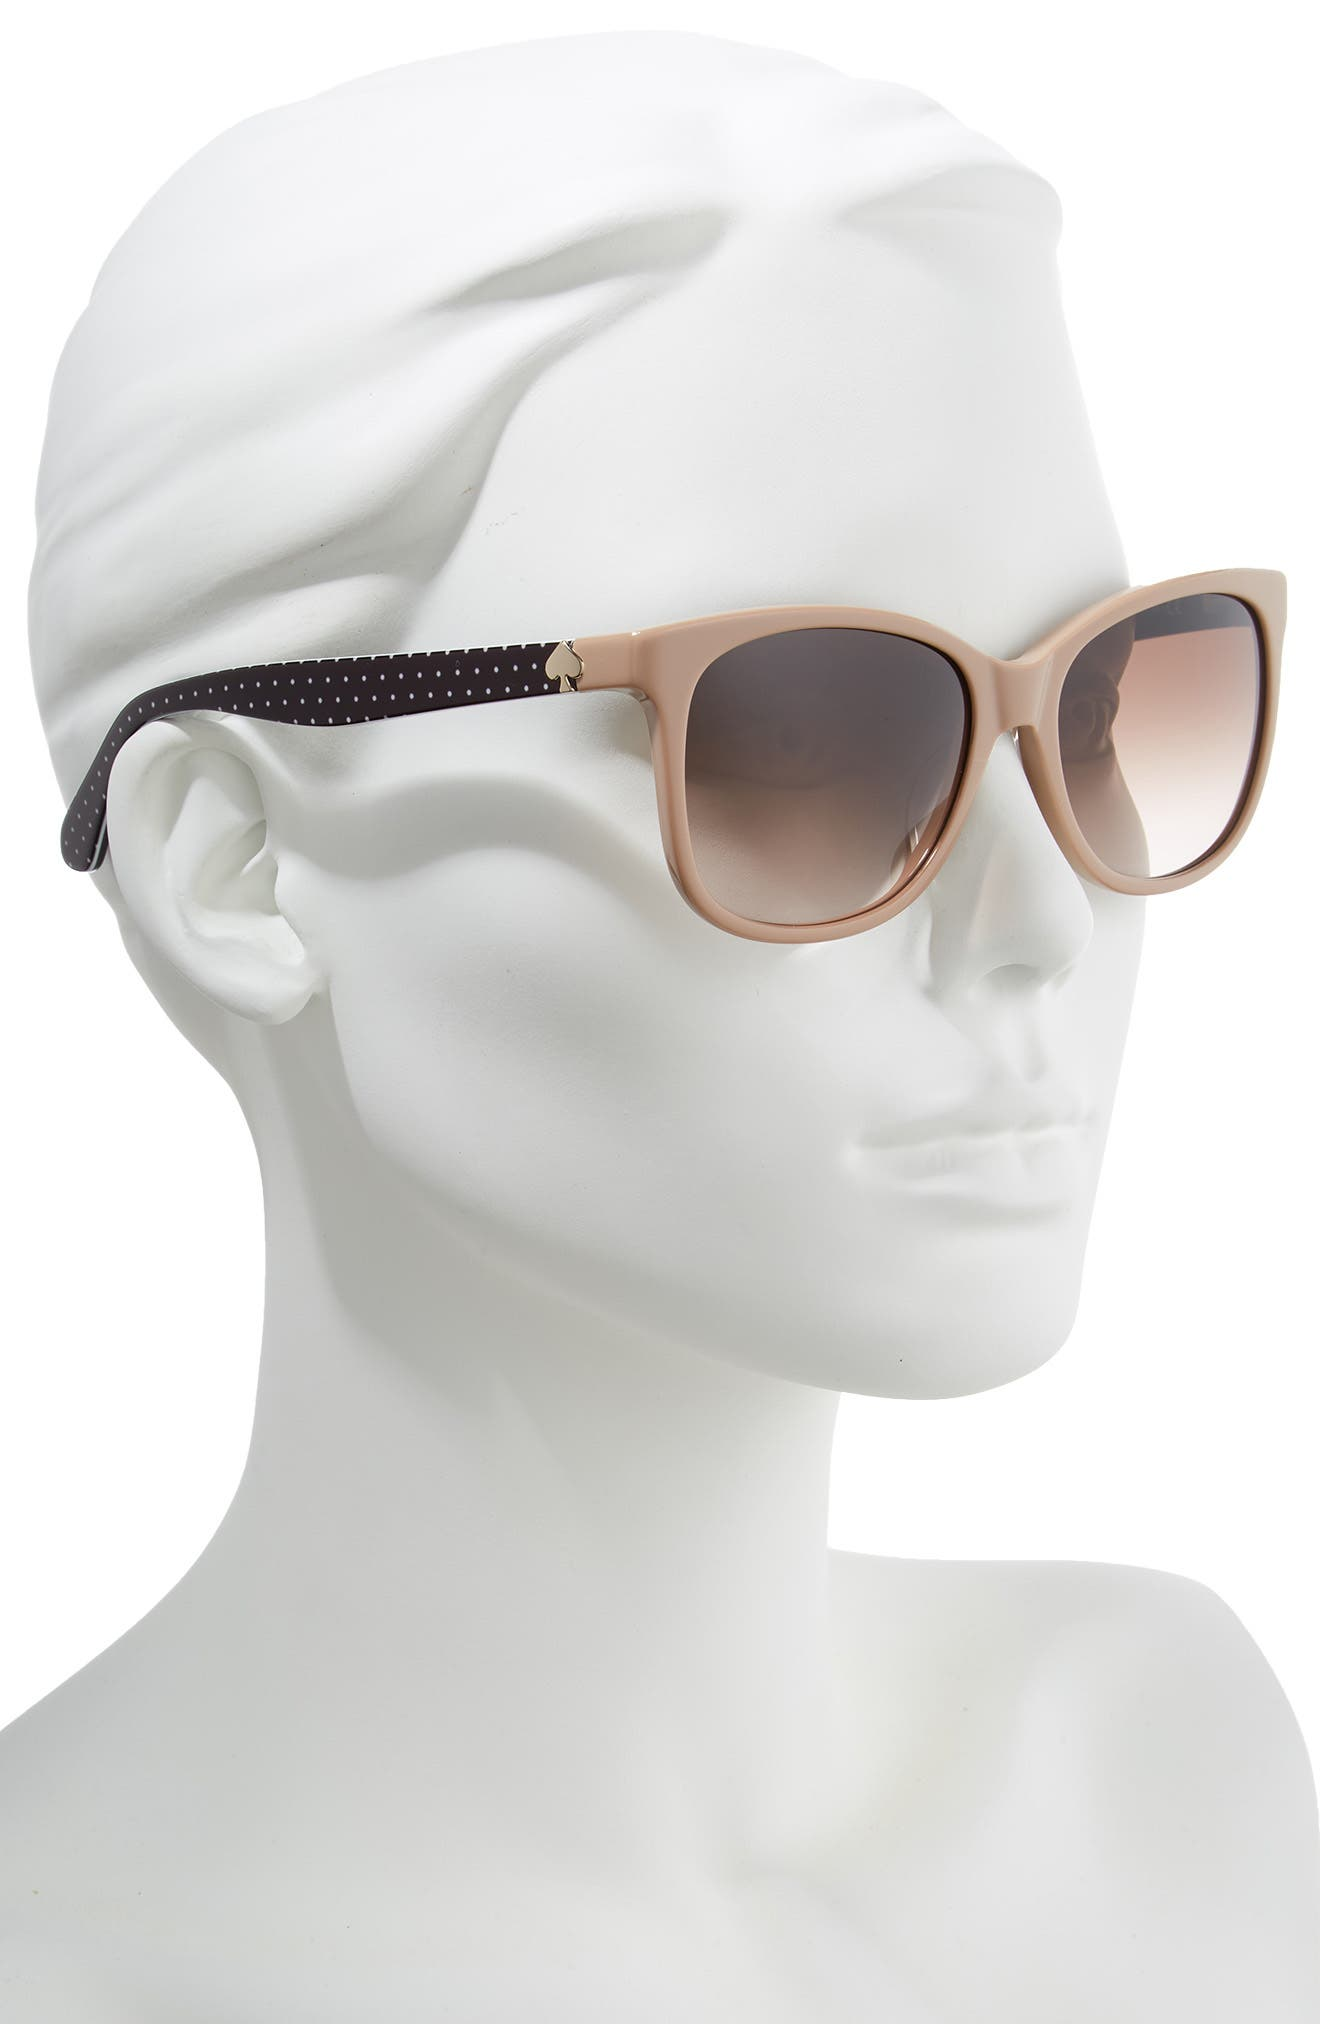 danalyns 54mm sunglasses,                             Alternate thumbnail 2, color,                             NUDE